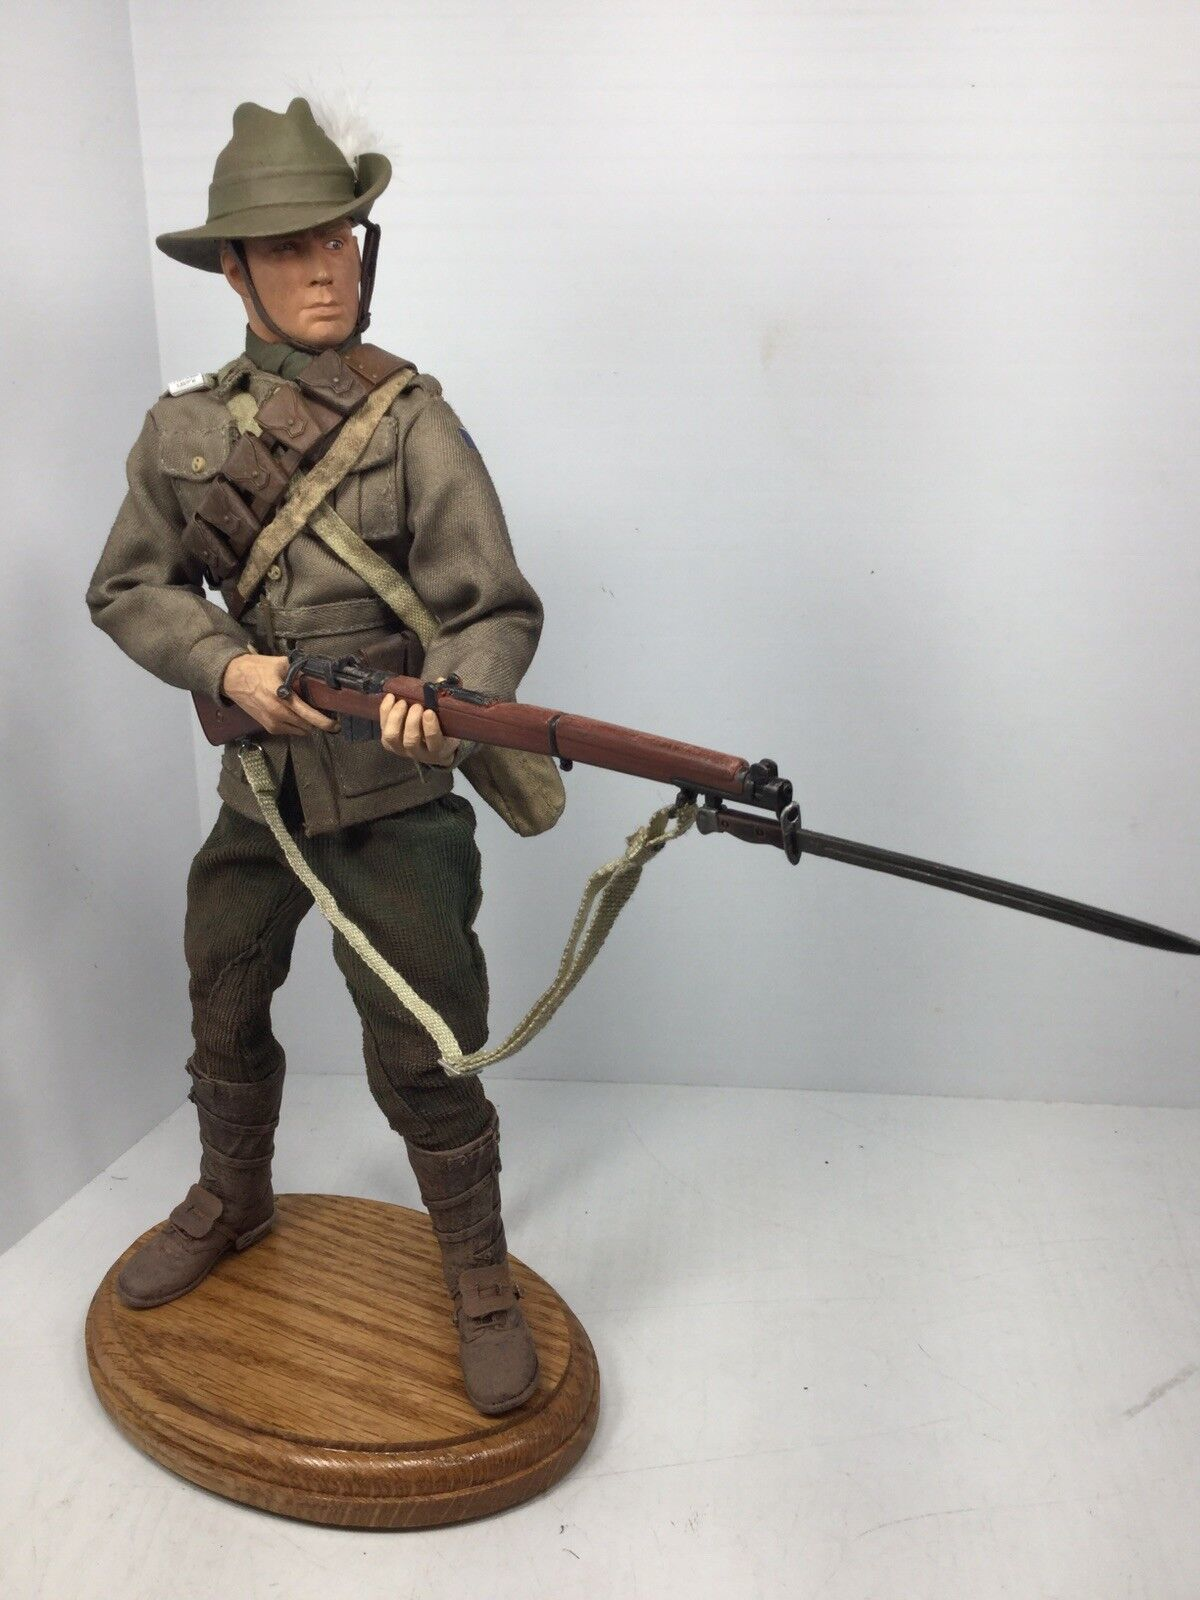 1 6 SIDESHOW WW1 AUSTRALIAN 4TH  LIGHT HORSEMAN BRDG + STAND DRAGON DID BBI 21st